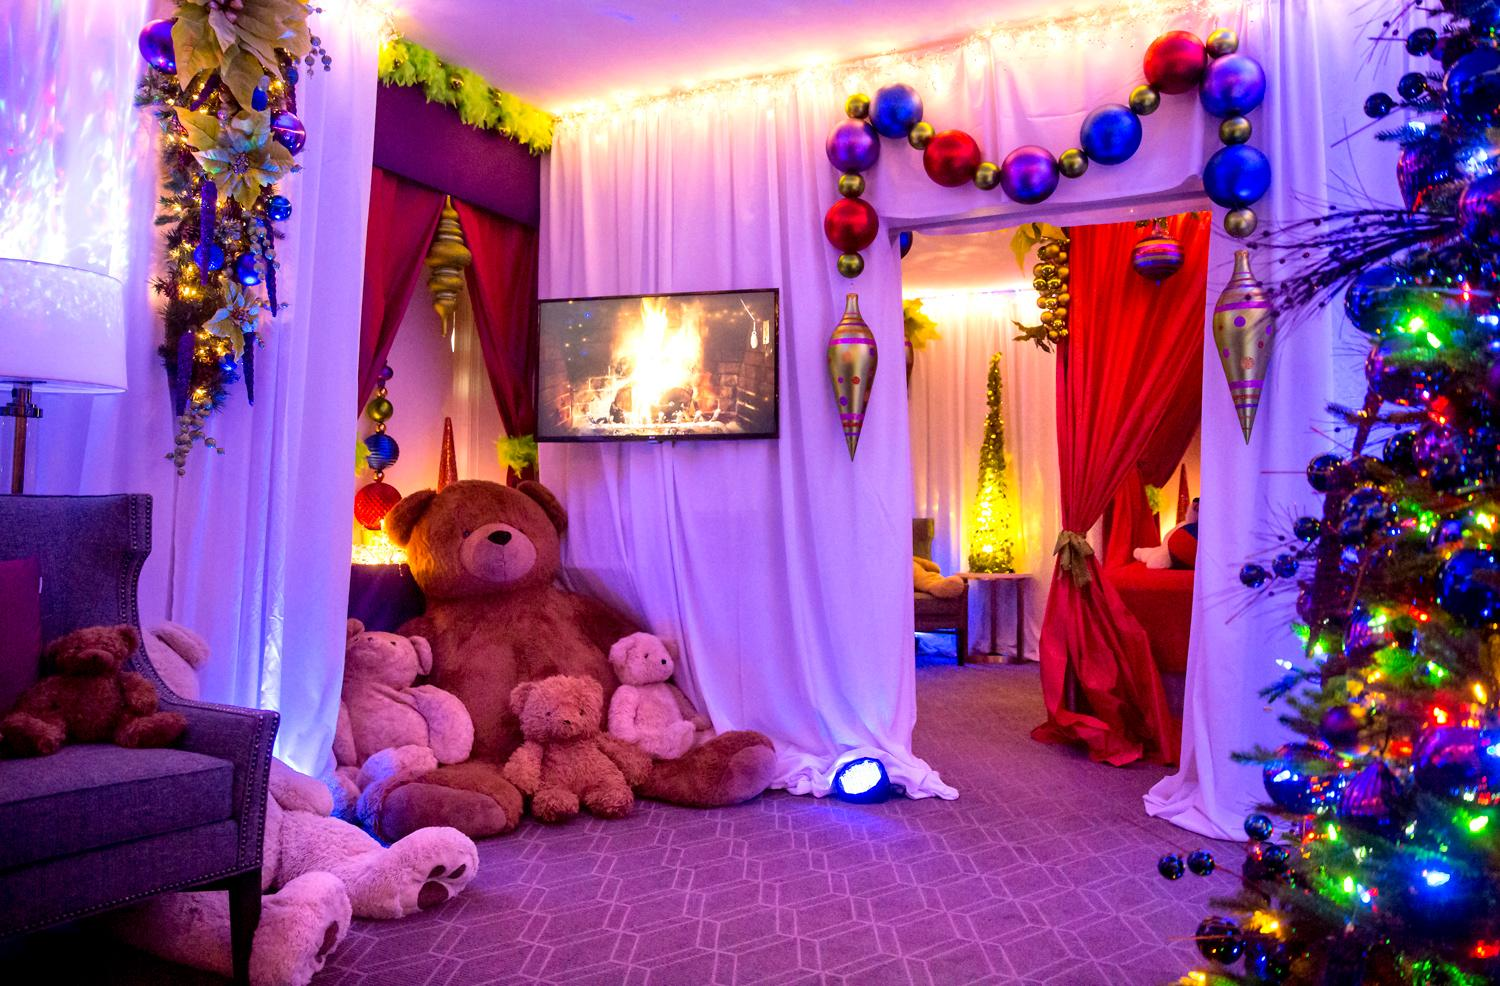 A favorite holiday tradition continues at the Fairmont Olympic Hotel as one of the suites is transformed into a teddy bear wonderland. Designed by local designer Kevin Bradford, the teddy bear suite includes approximately 75 teddy bears big and small for kids and adults to explore and enjoy. The suite is open daily from 10 a.m. to 6 p.m. through Dec. 26 and located on the 2nd floor at the Fairmont Olympic Hotel. Donations are encouraged and proceeds benefit Seattle Children's. (Sy Bean / Seattle Refined)